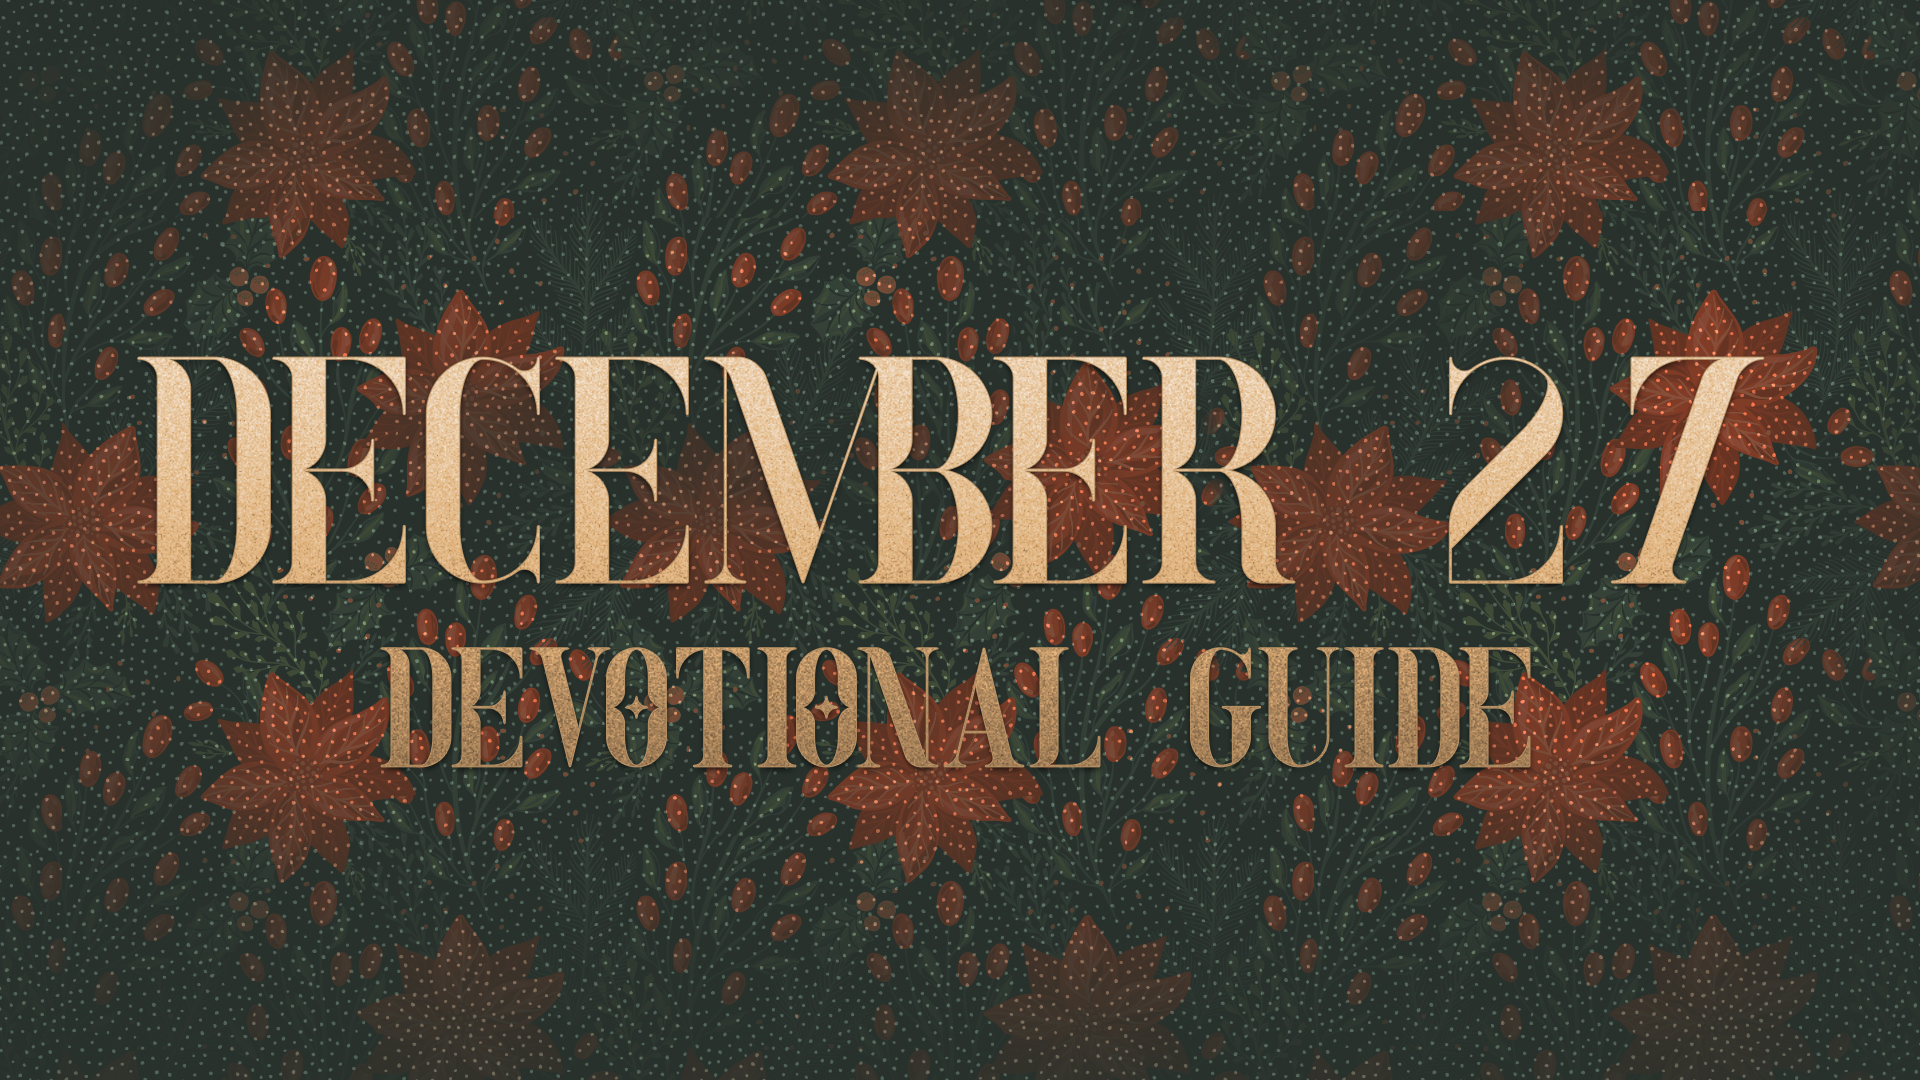 December 27 Devotional Guide Hero Image